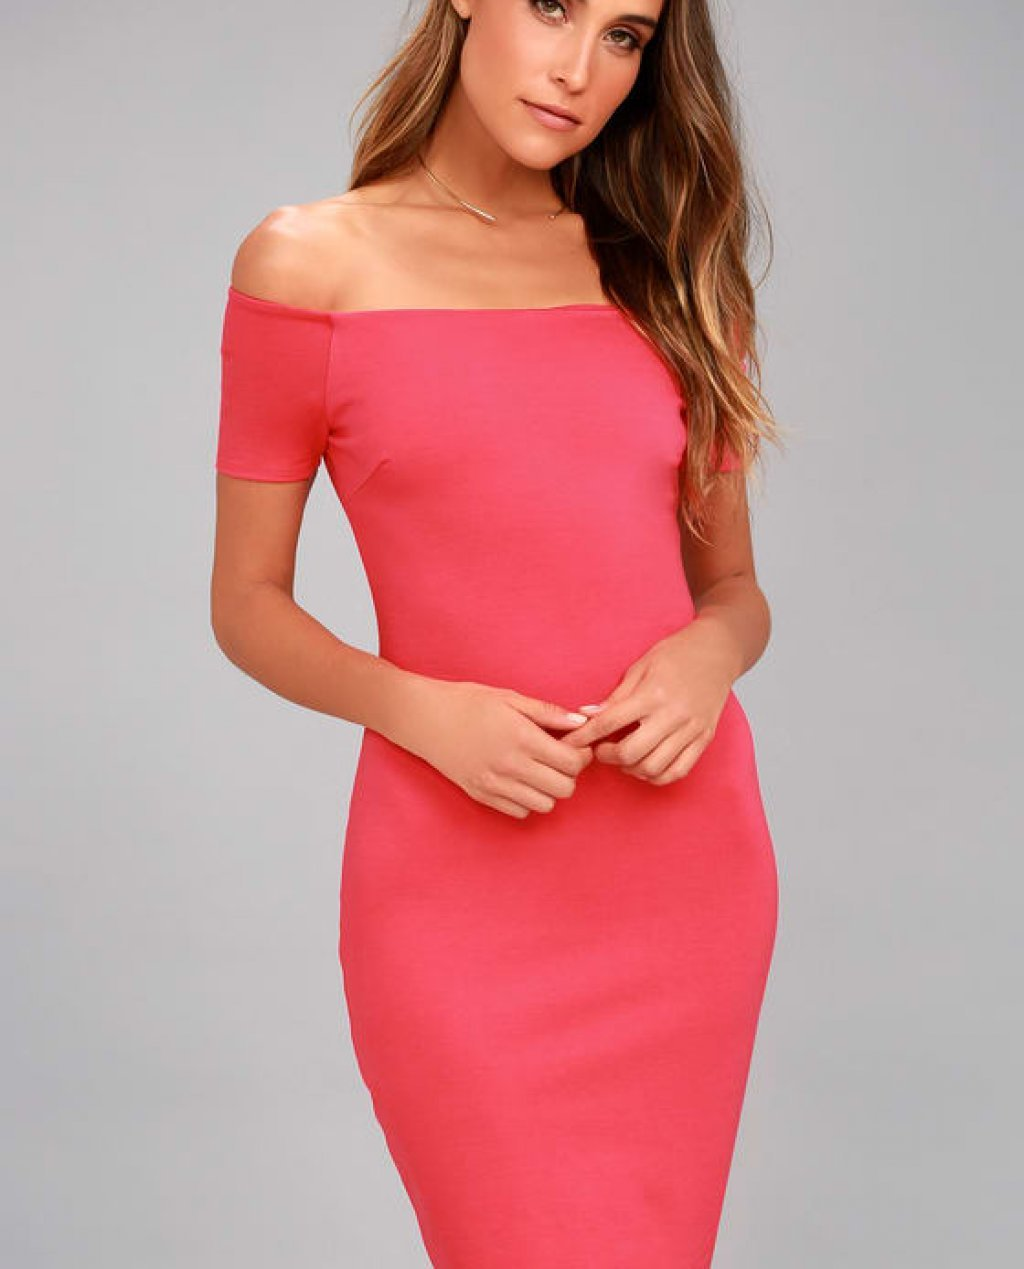 Me Oh My Fuchsia Off-the-Shoulder Bodycon Dress